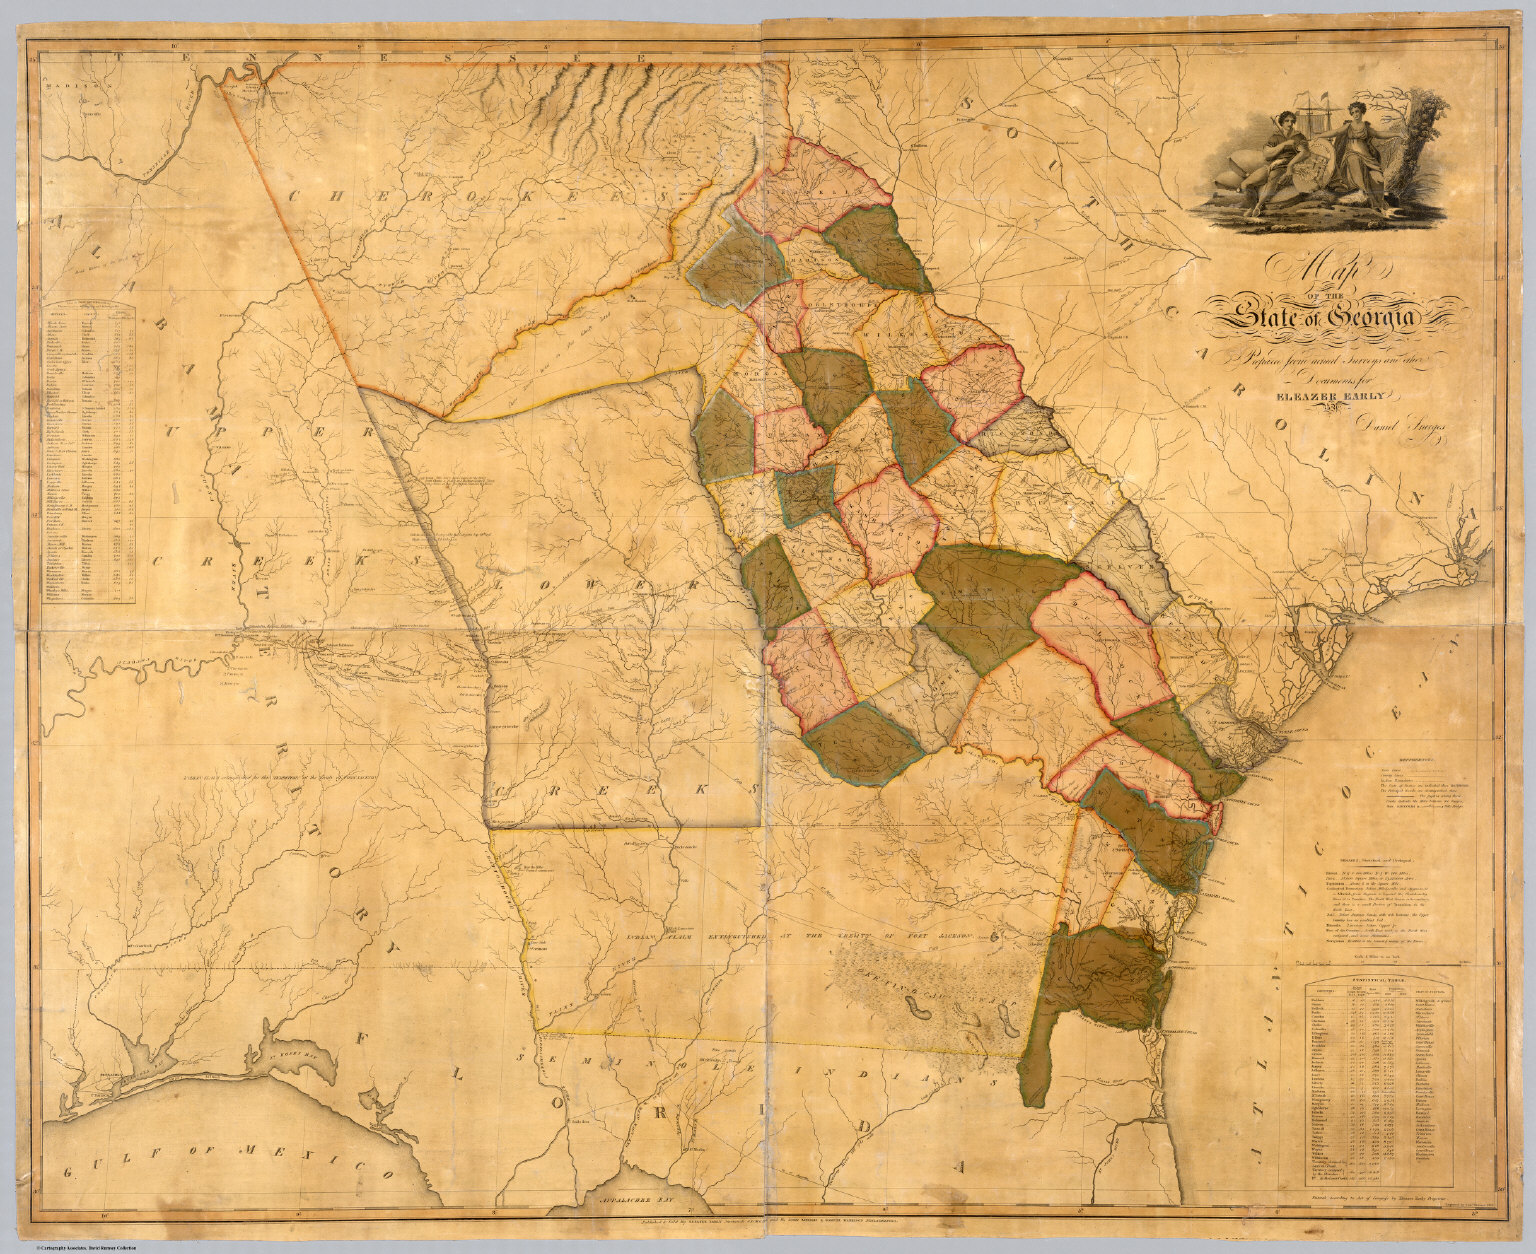 Map Of The State Of Georgia David Rumsey Historical Map Collection - State map georgia